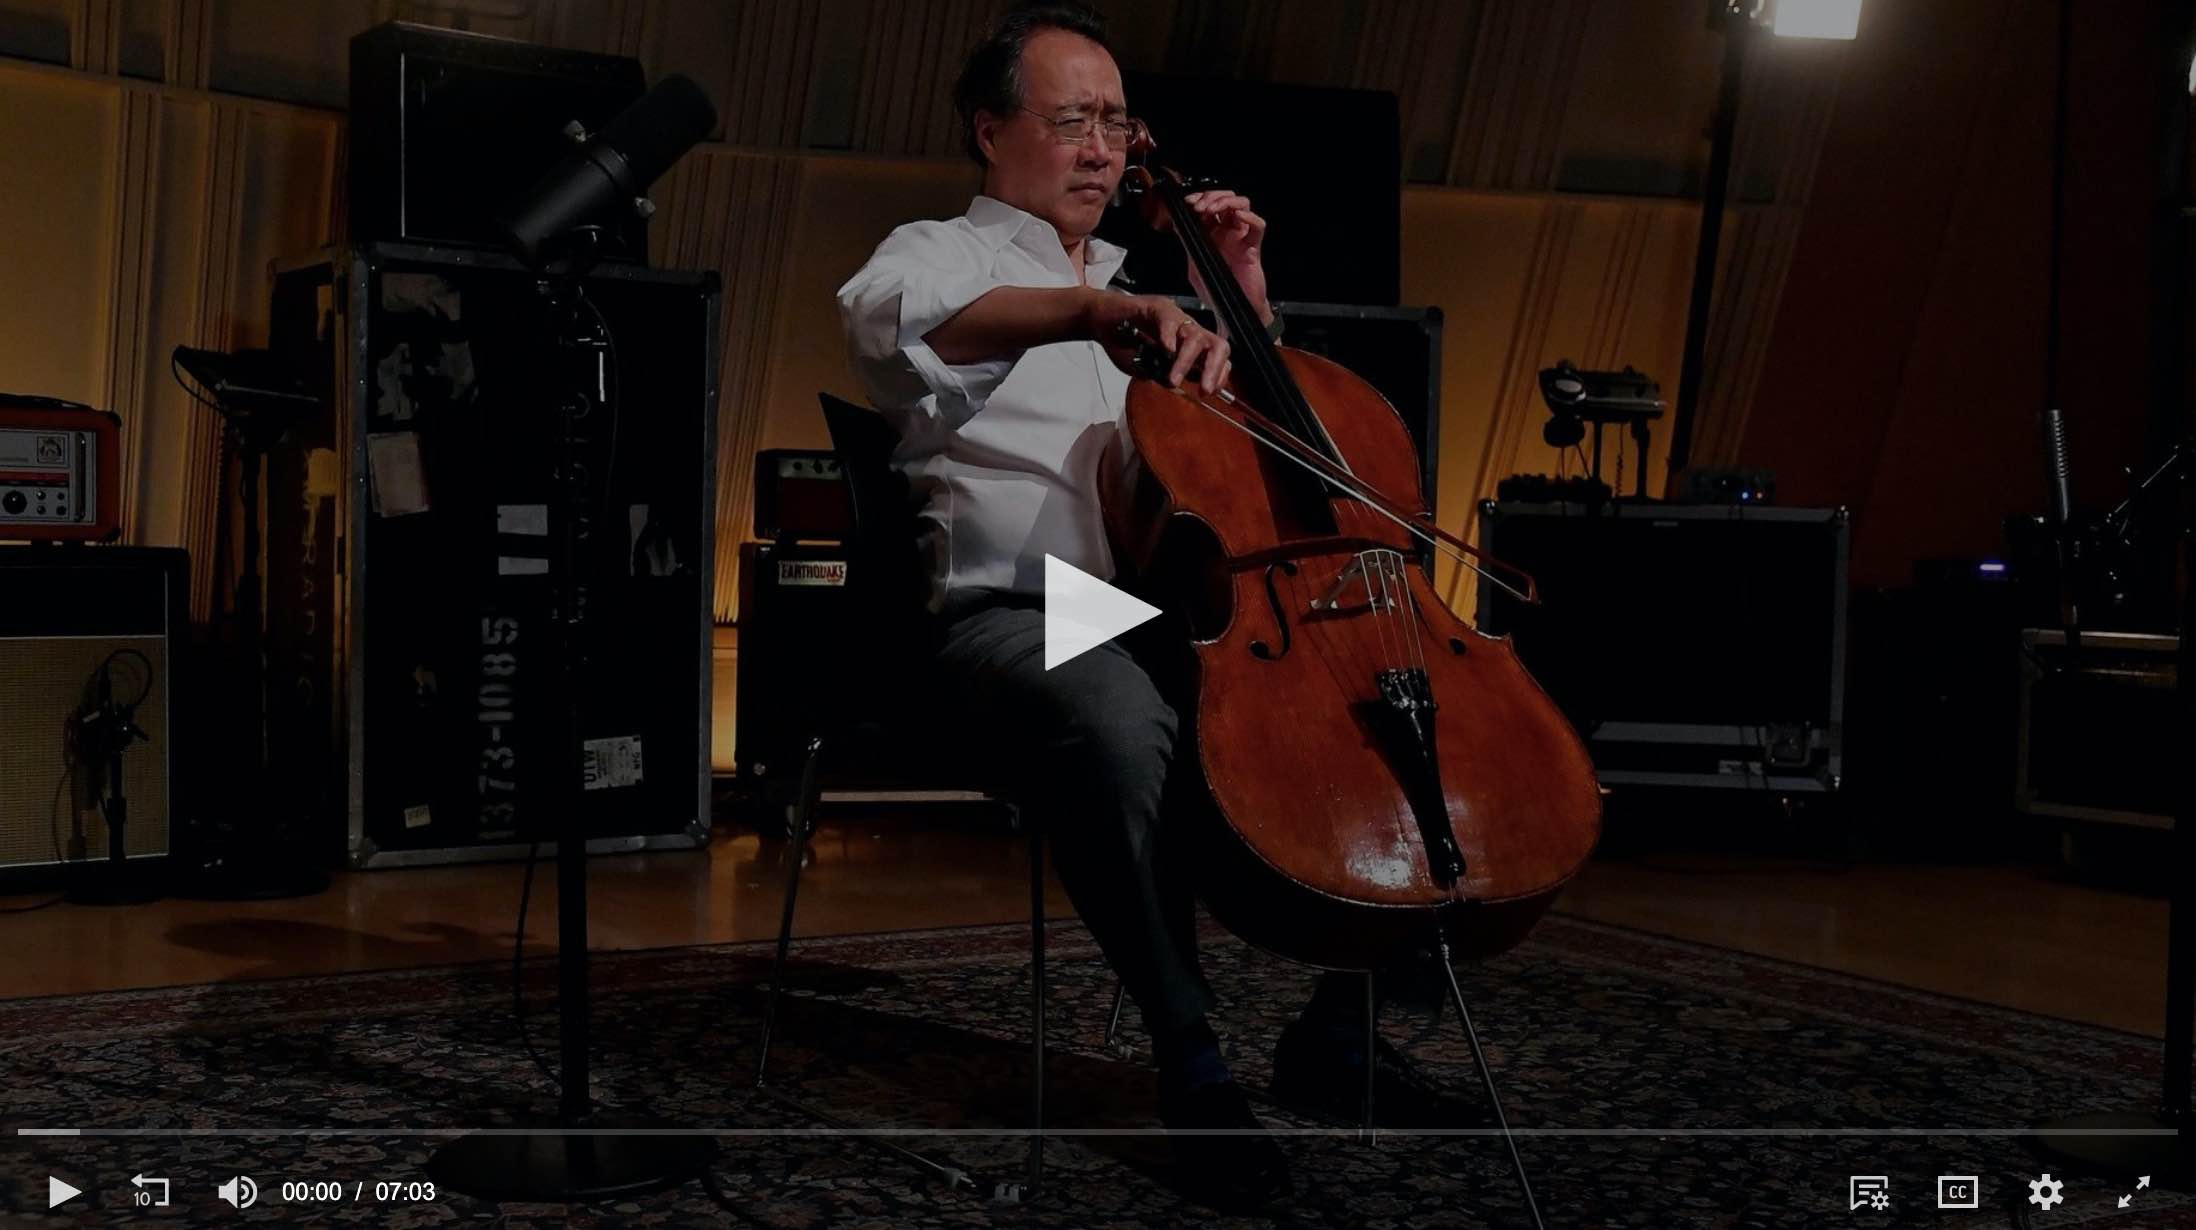 Yo-Yo Ma encourages 'Songs of Comfort' amid global crisis